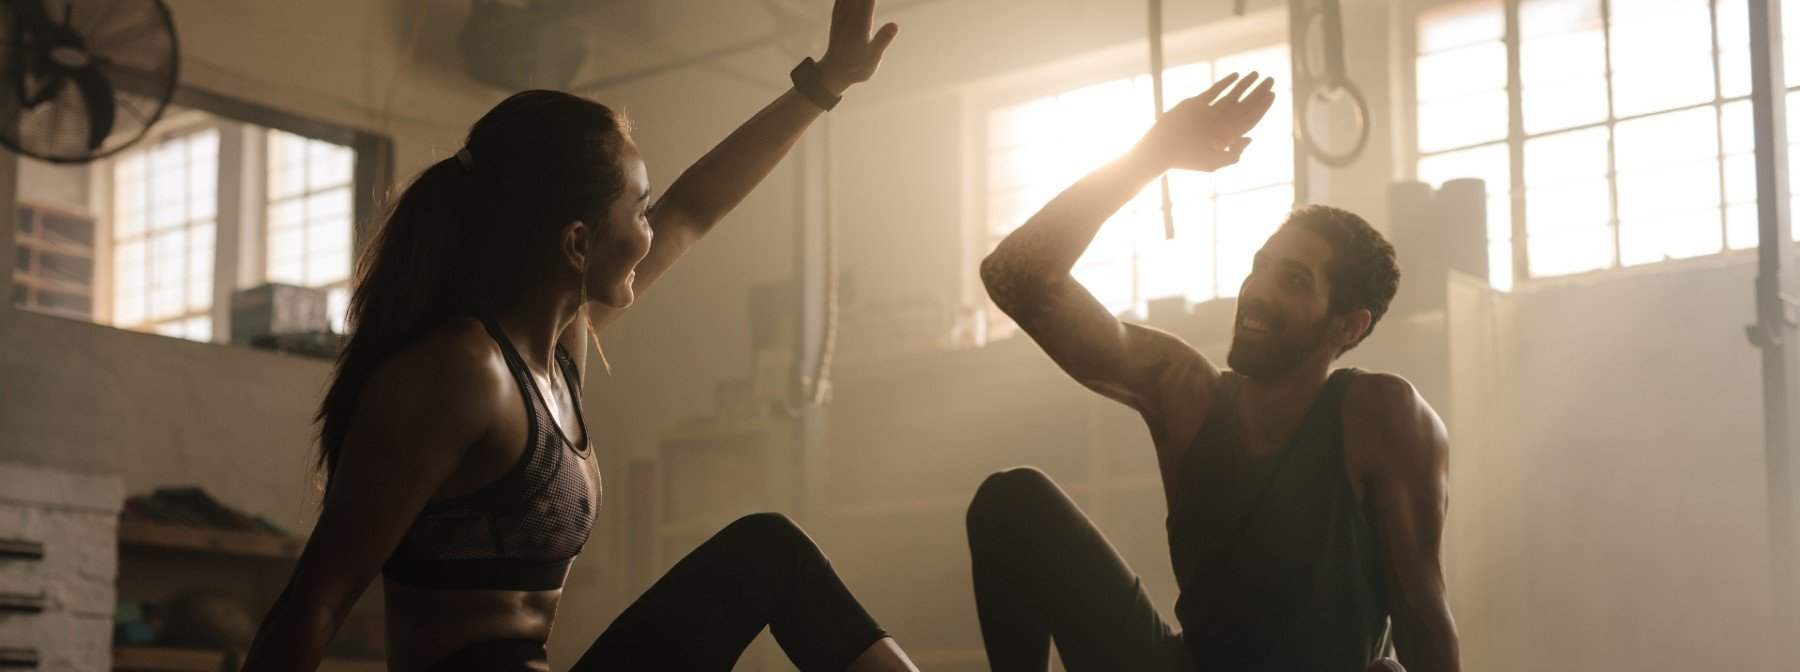 Get Your Gym Routine Back On Track In 7 Steps